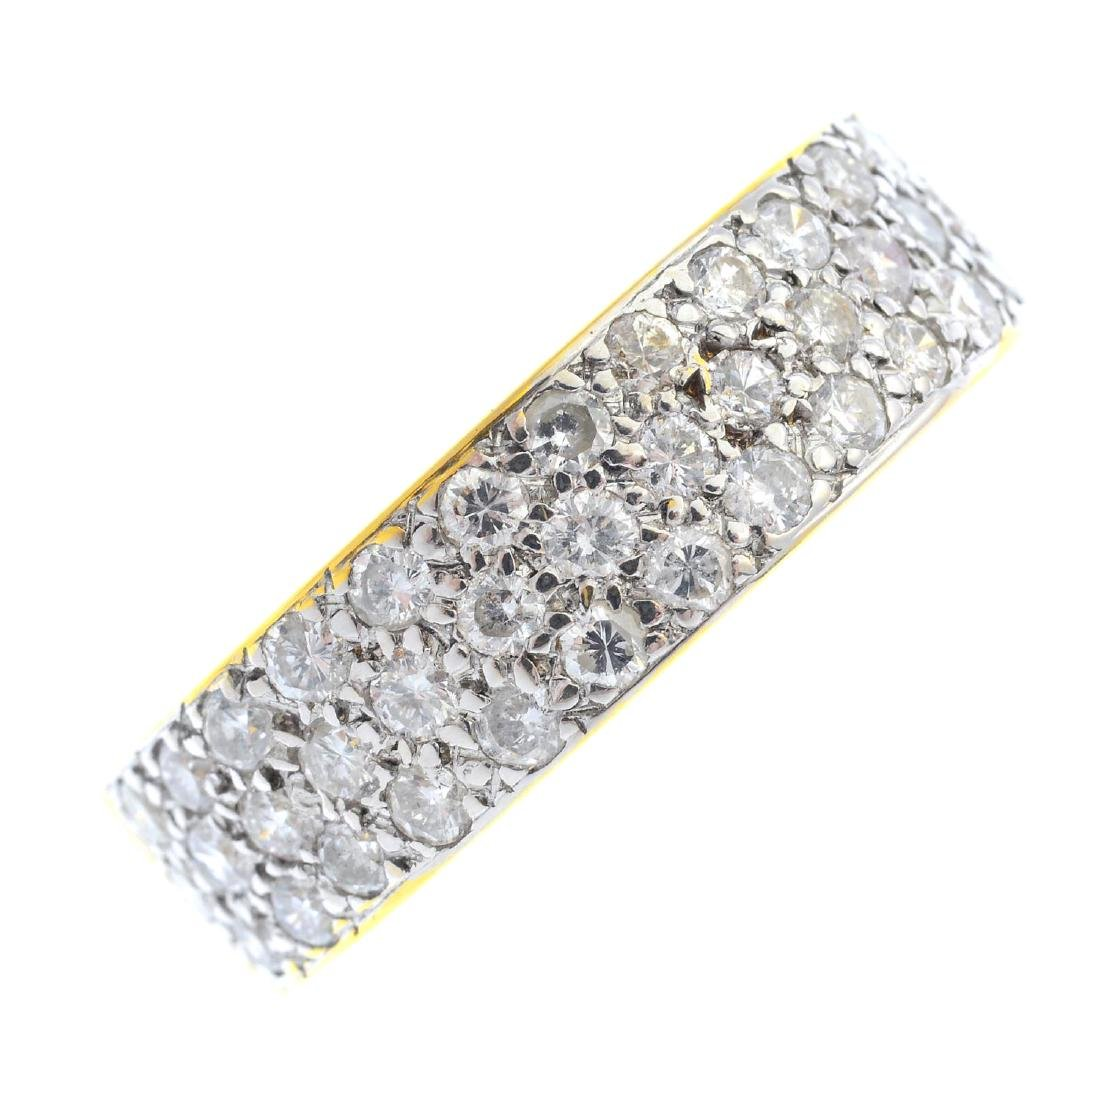 An 18ct gold diamond band ring. Designed as a pave-set